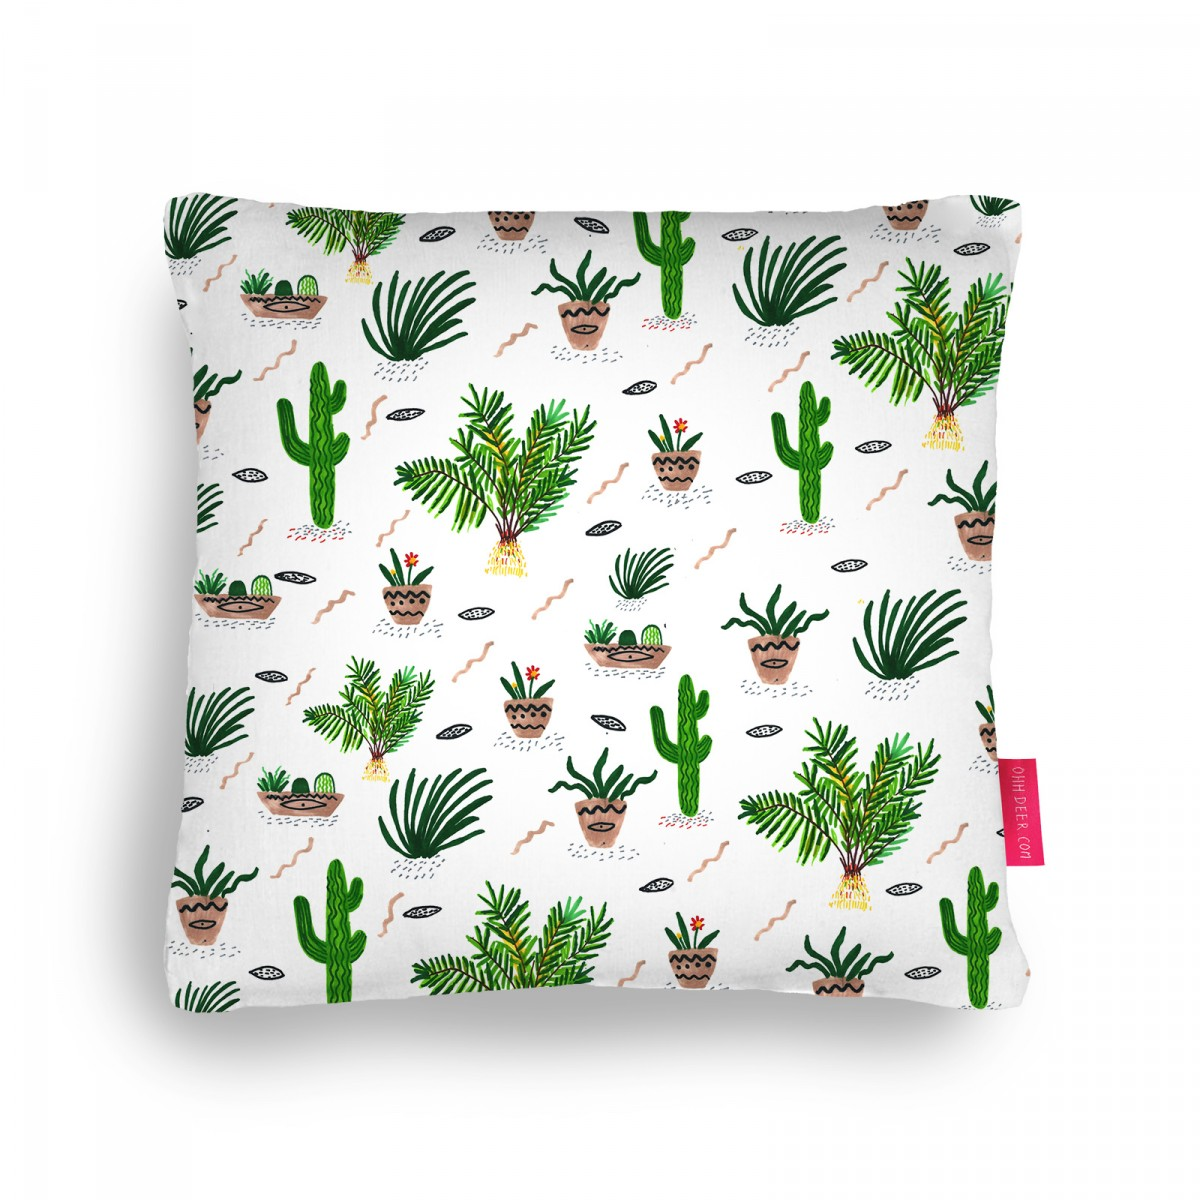 ohhdeer-kris-tate-cacti-and-friends-cushion-cacti--desert--sun--plants--flowers--green--cactus-31 (1)